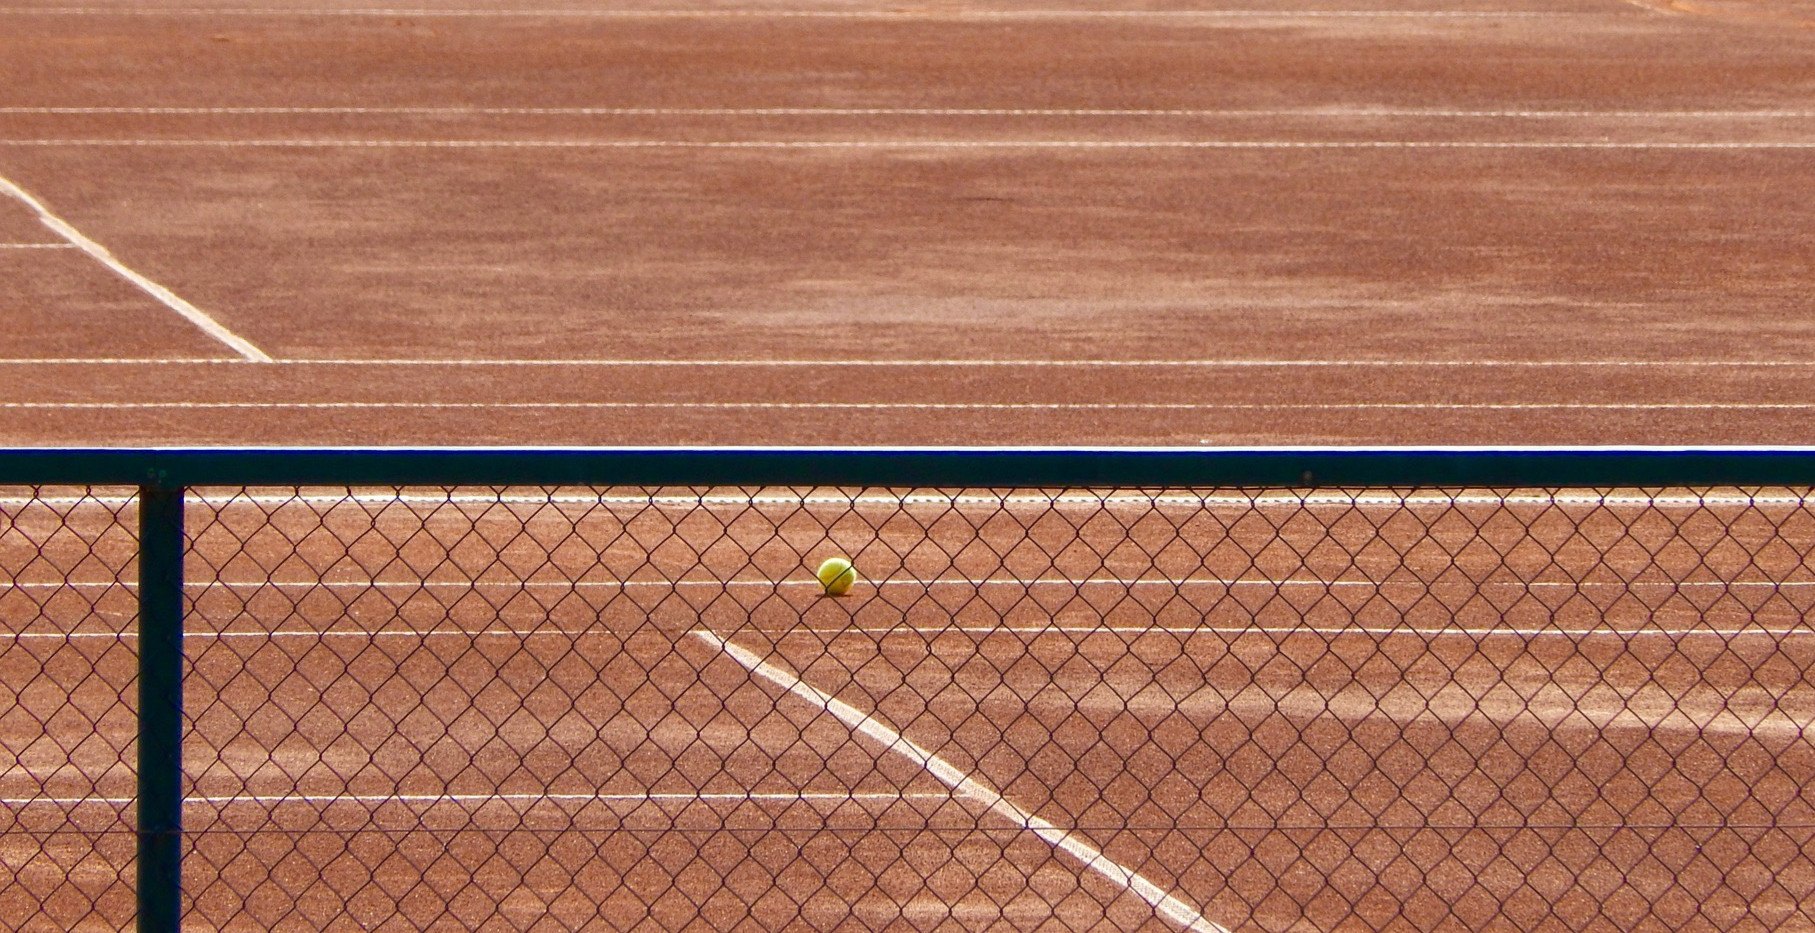 Tennis court fence.jpg